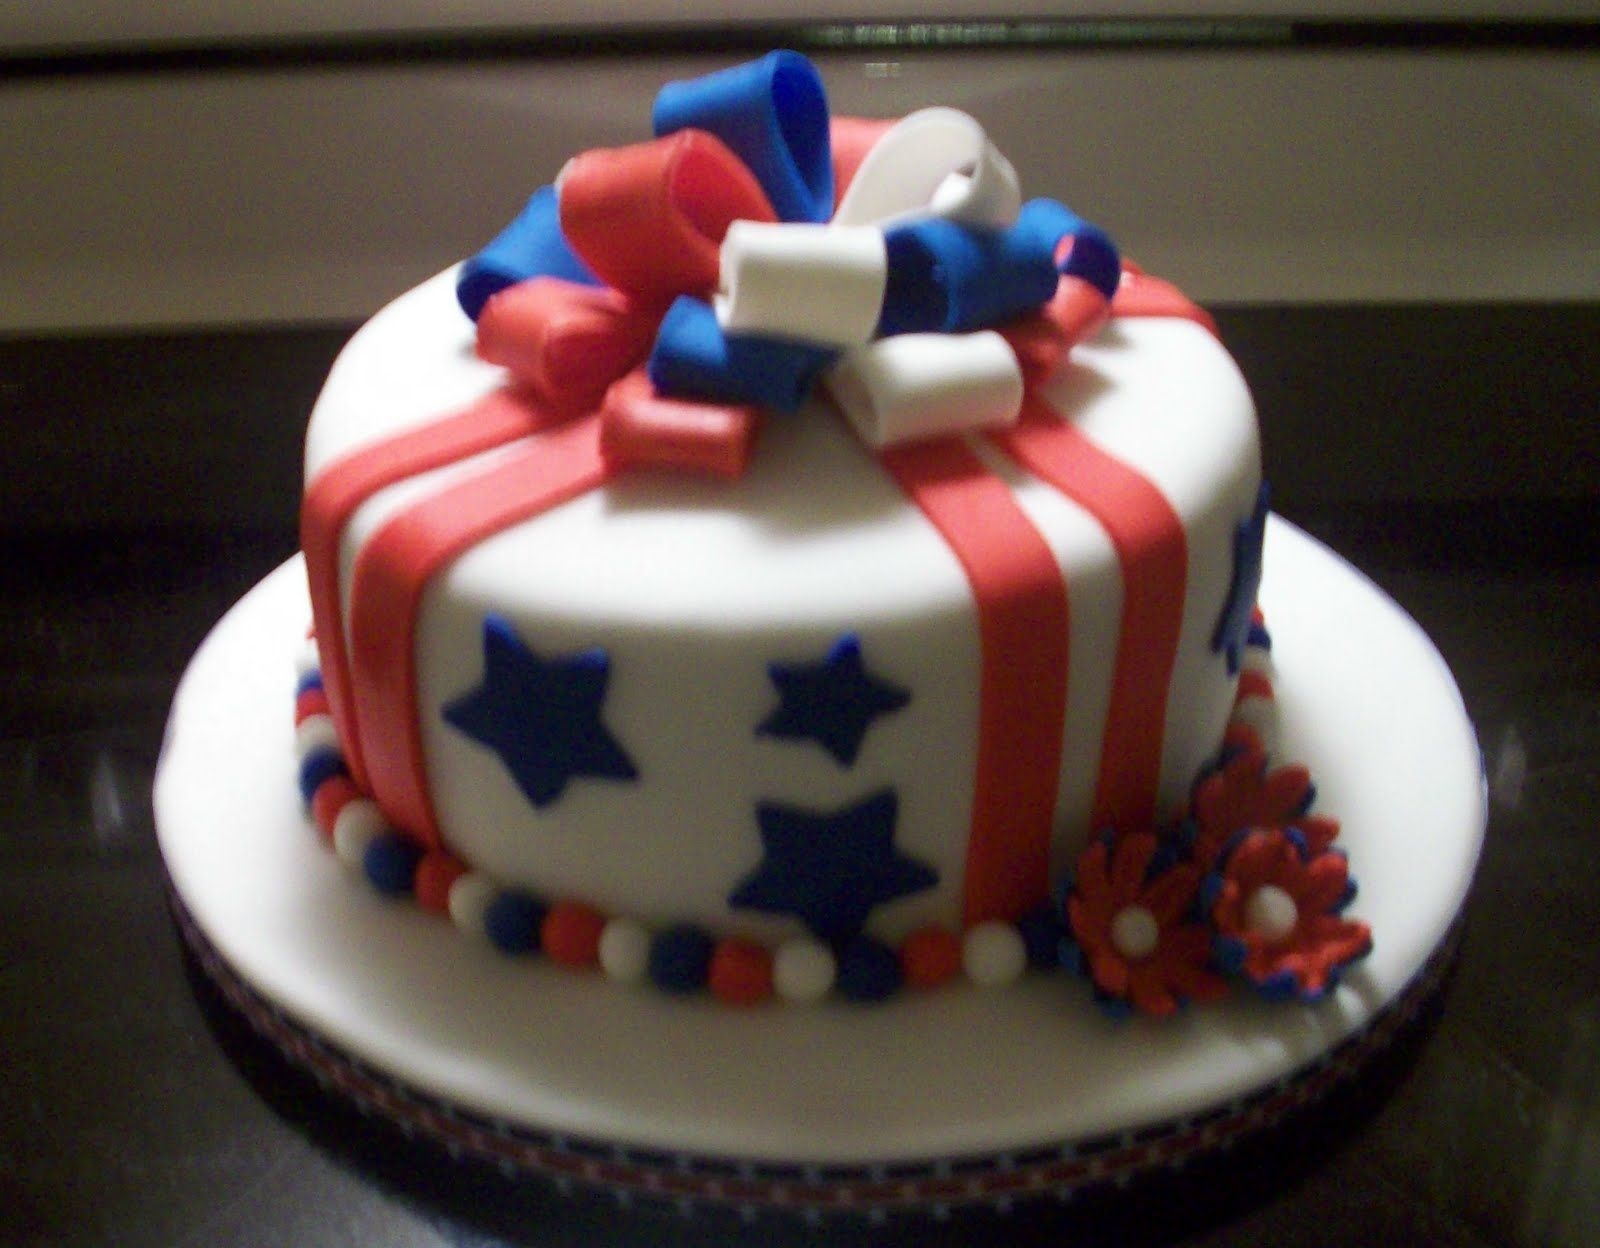 fondant 4th of july cakes - Google Search Fourth of July ...